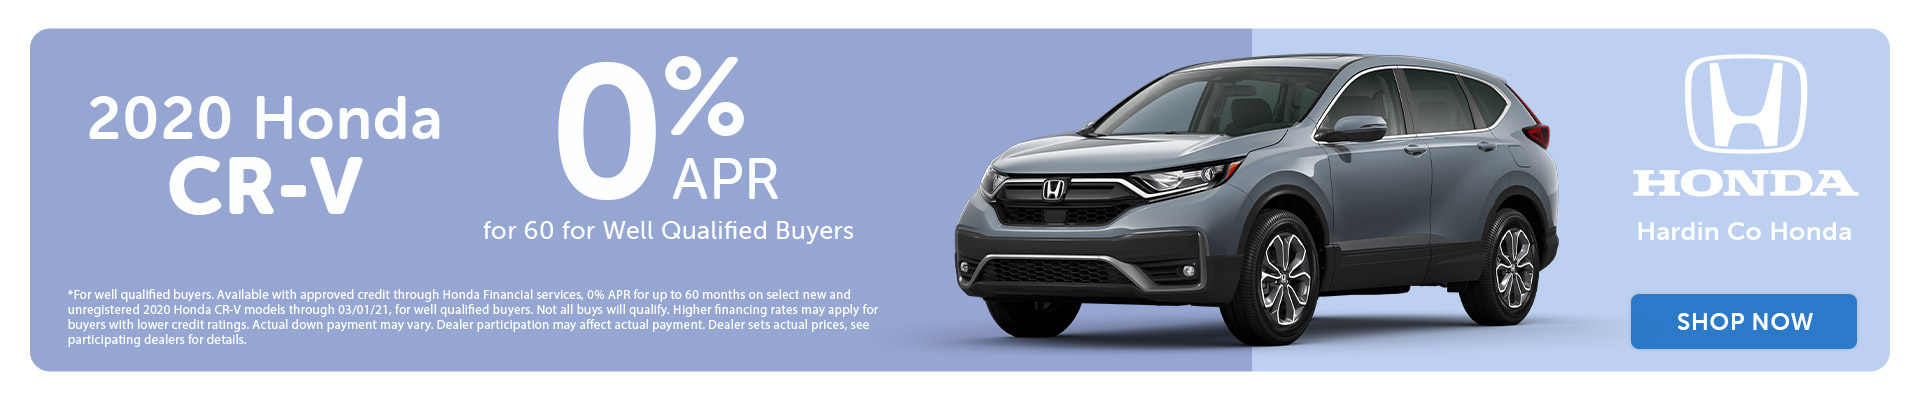 0% APR - 2020 Honda CR-V